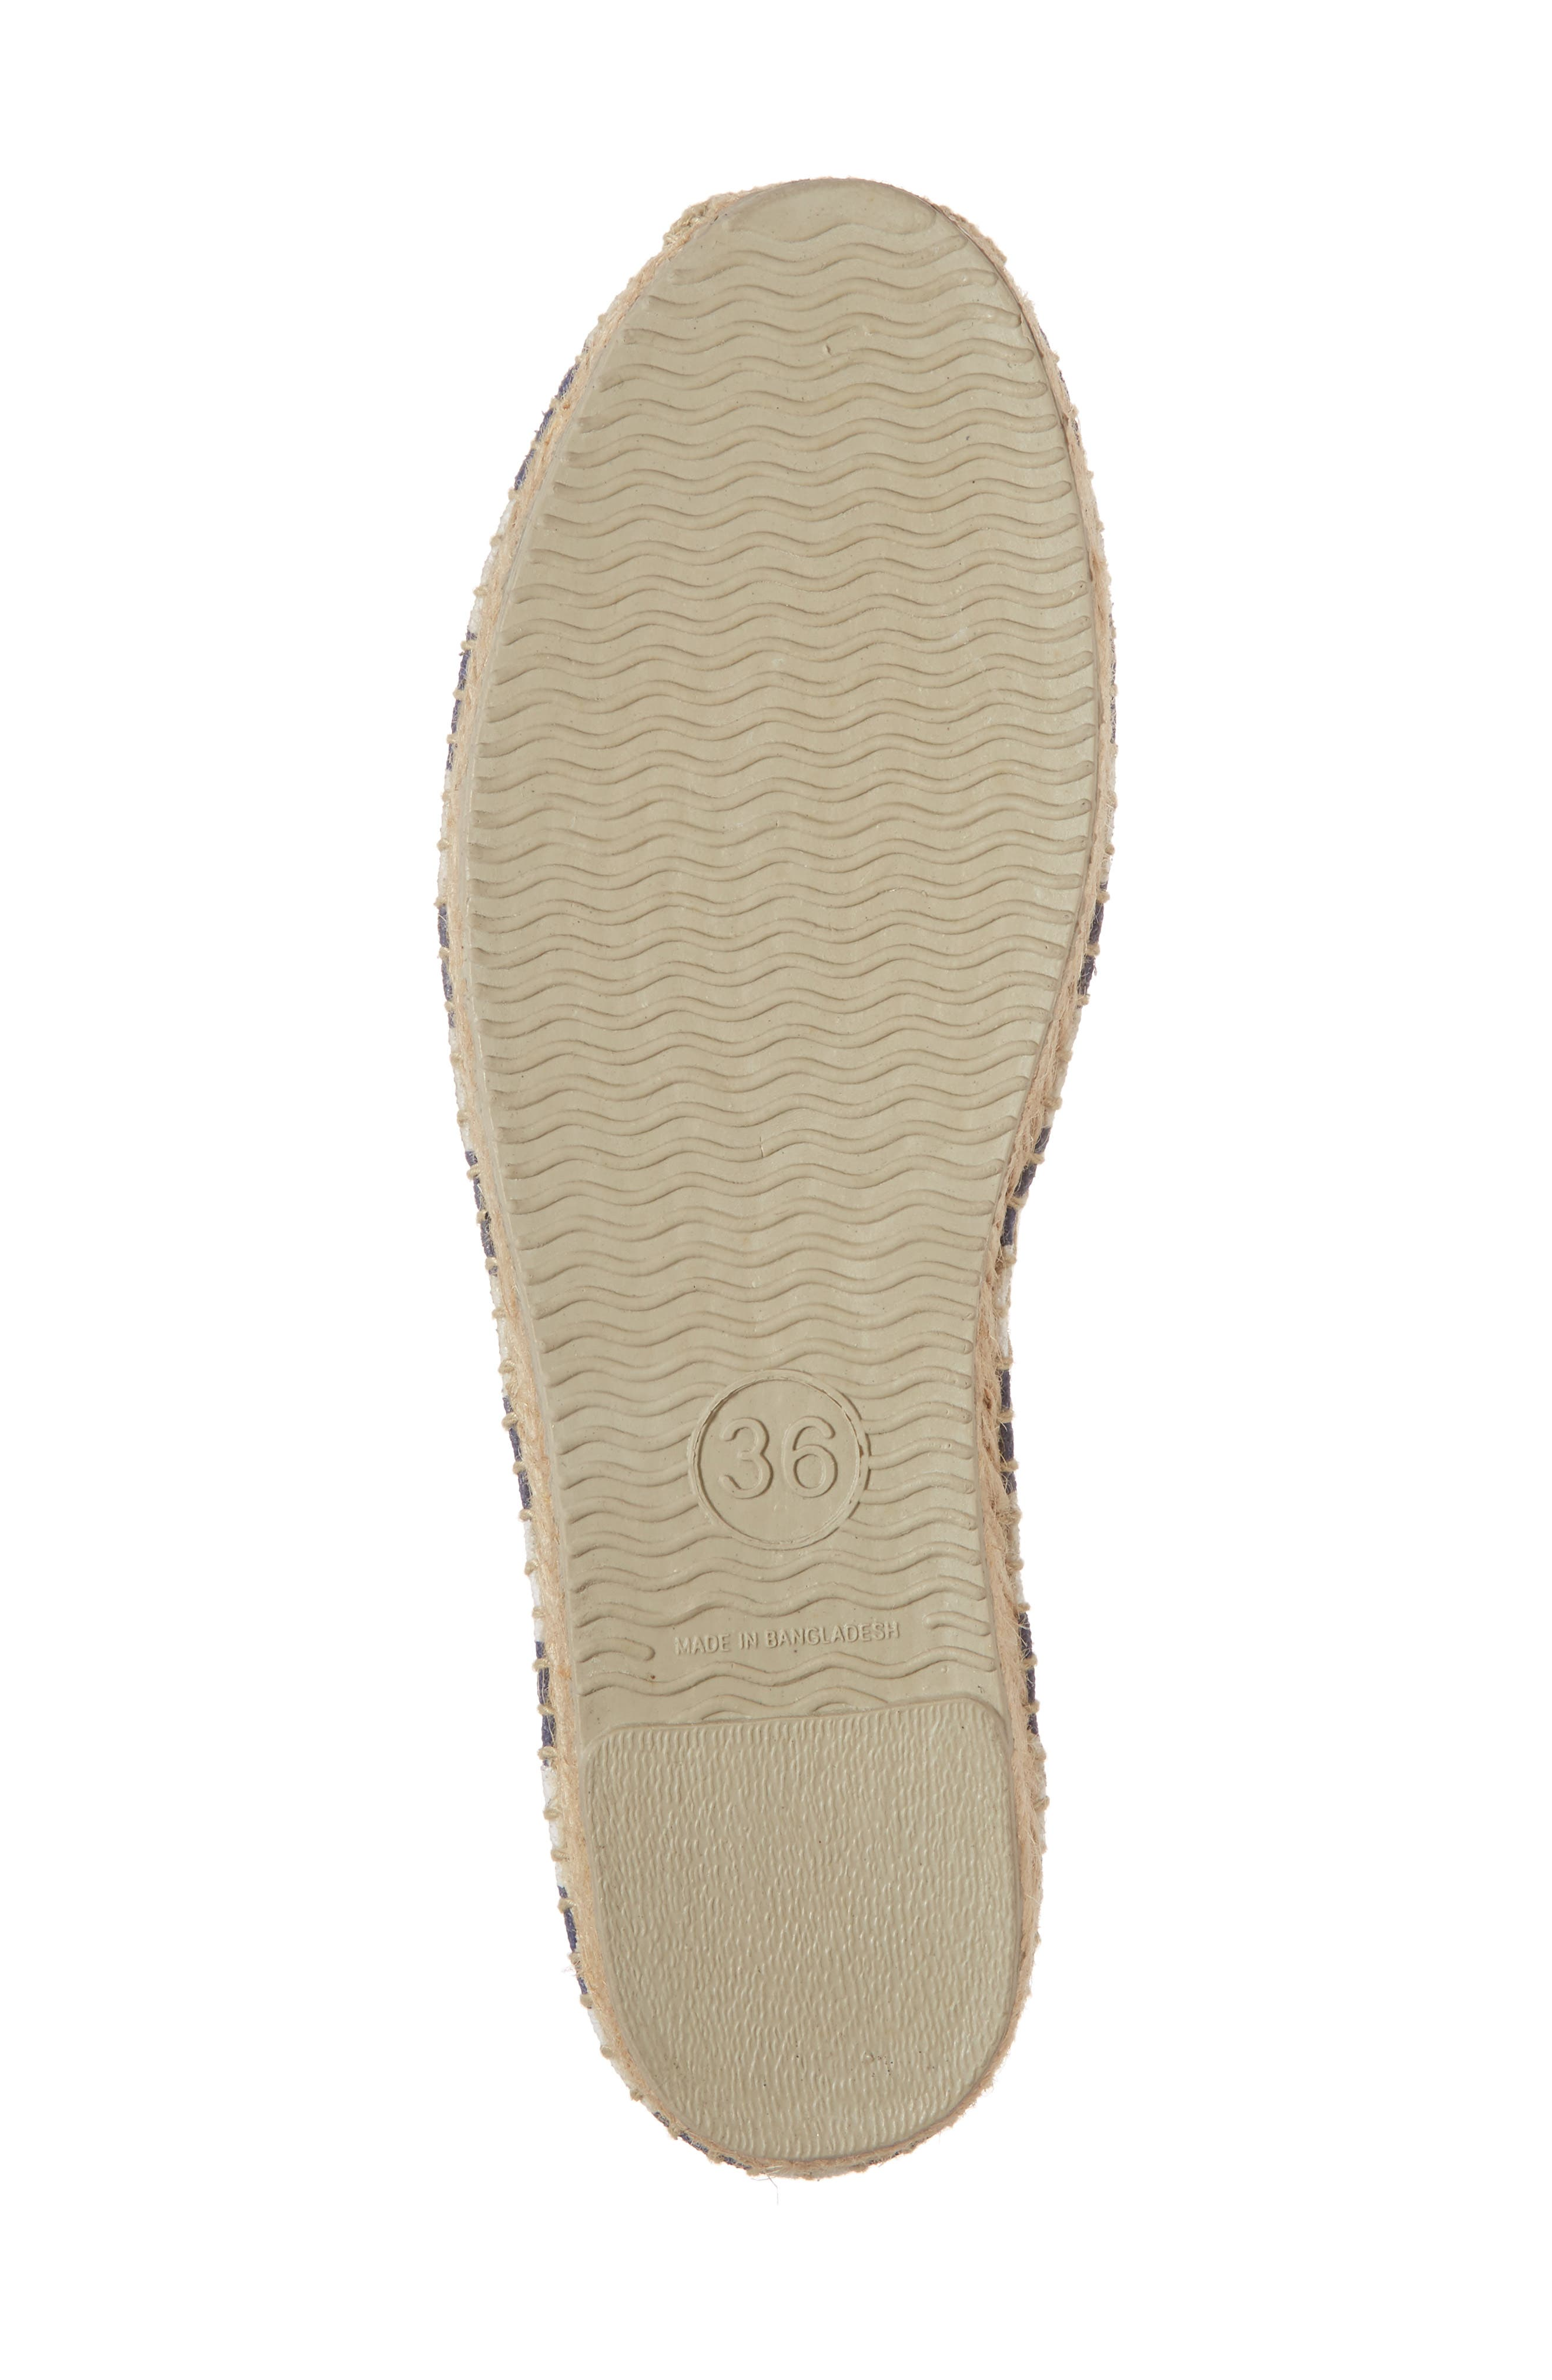 Embroidered Lobster & Crab Espadrille Flat,                             Alternate thumbnail 6, color,                             415